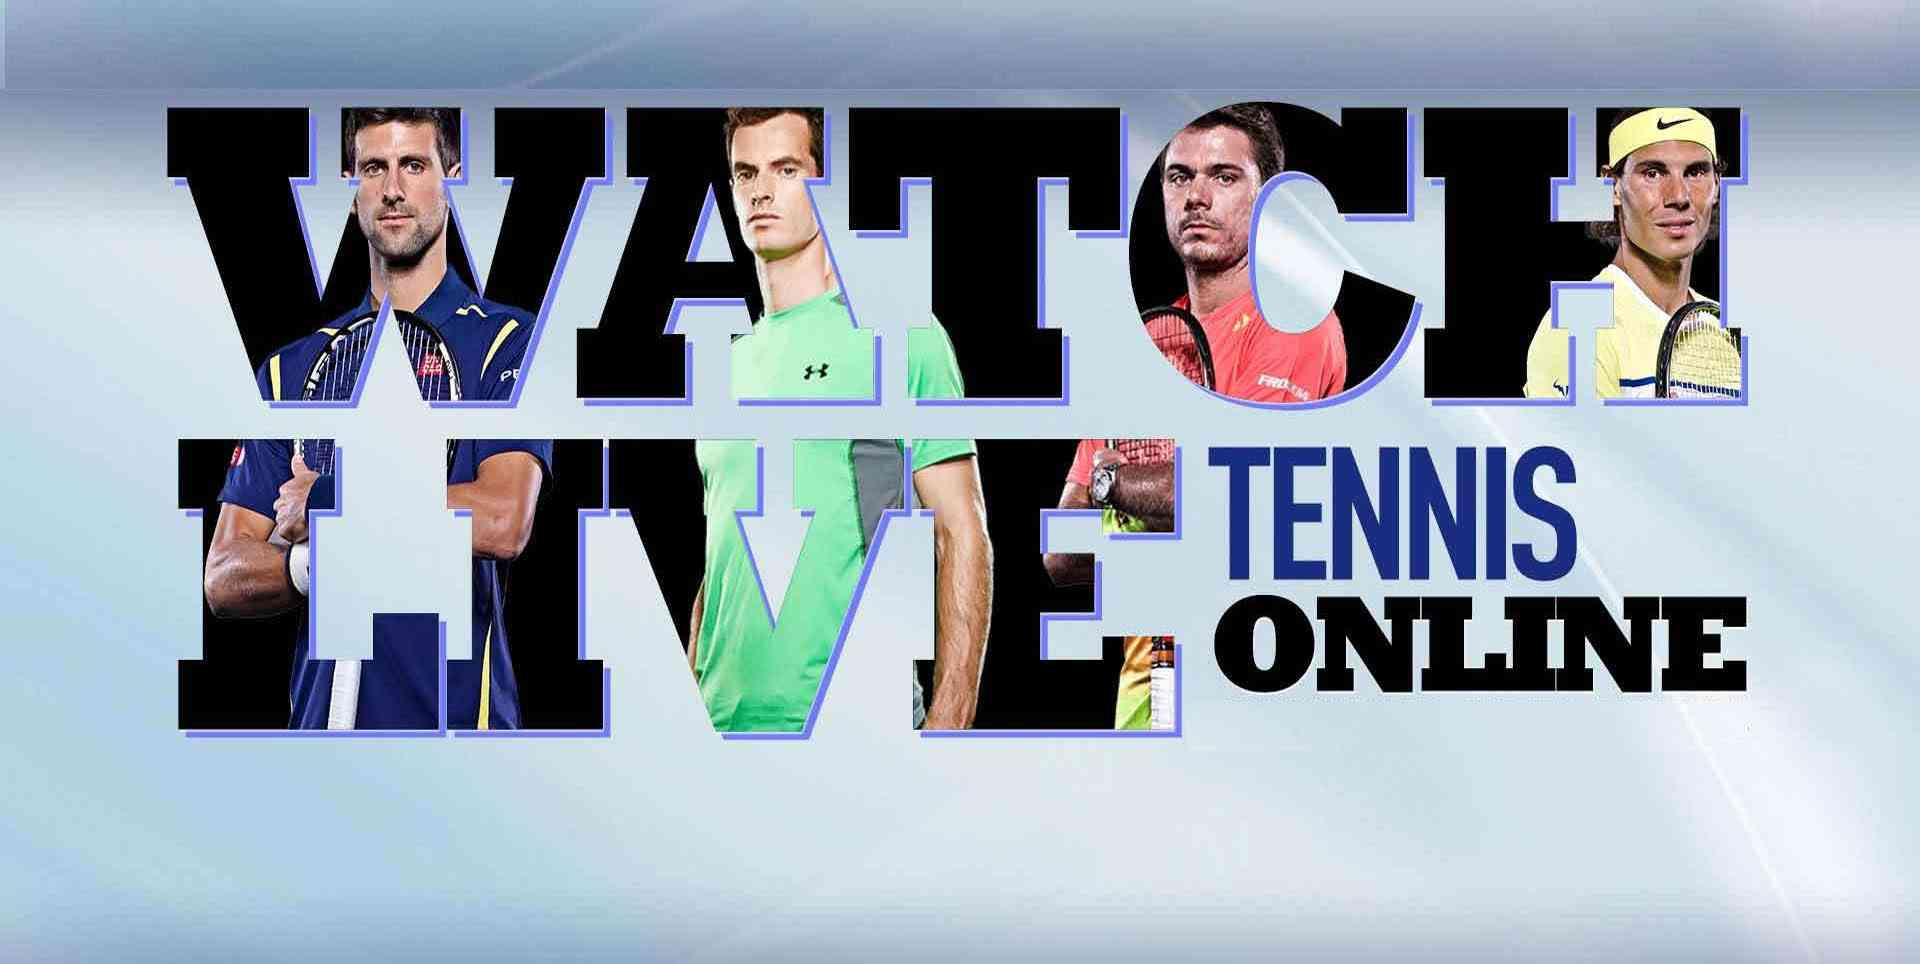 watch-l.-paes-|-r.-stepanek-vs-d.-nestor-|-n.-zimonjic-quarter-final-2014-online